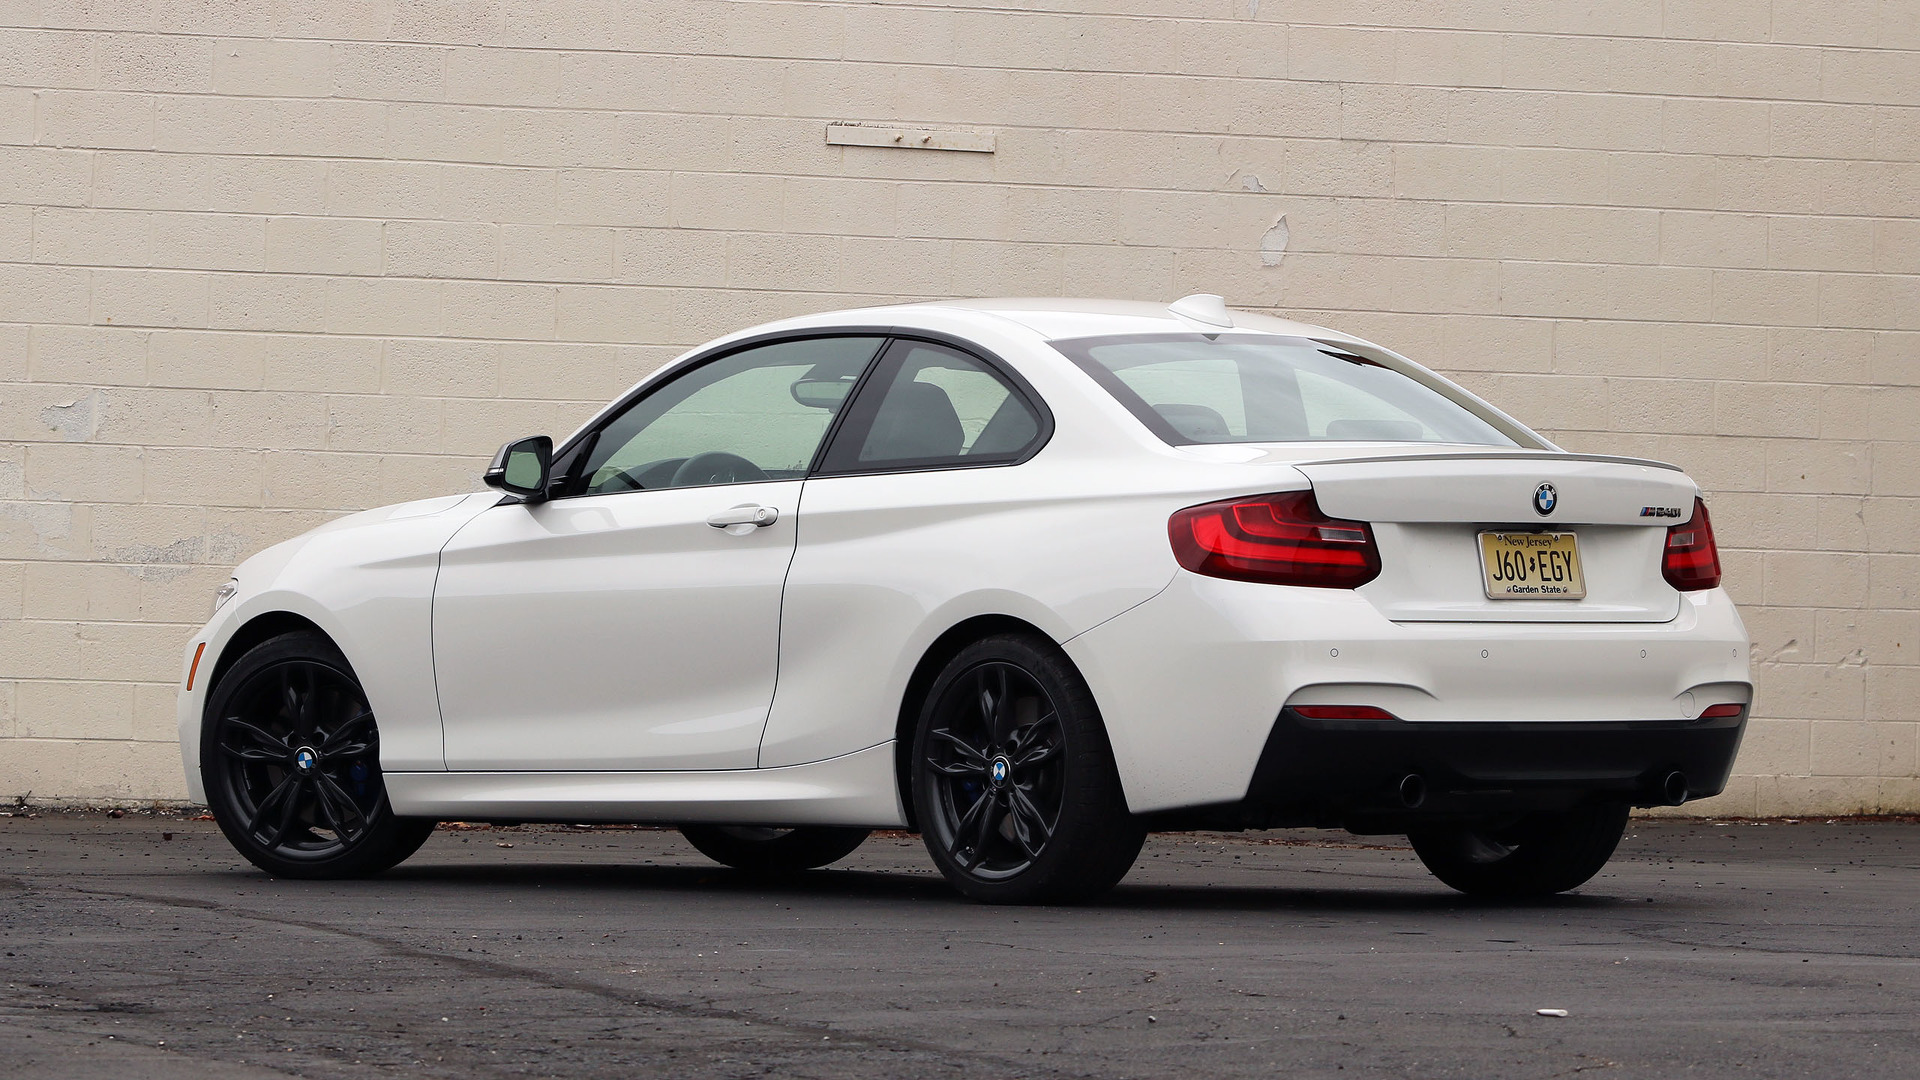 2017 Bmw M240i Review Just What The Performance Loving Doctor Ordered